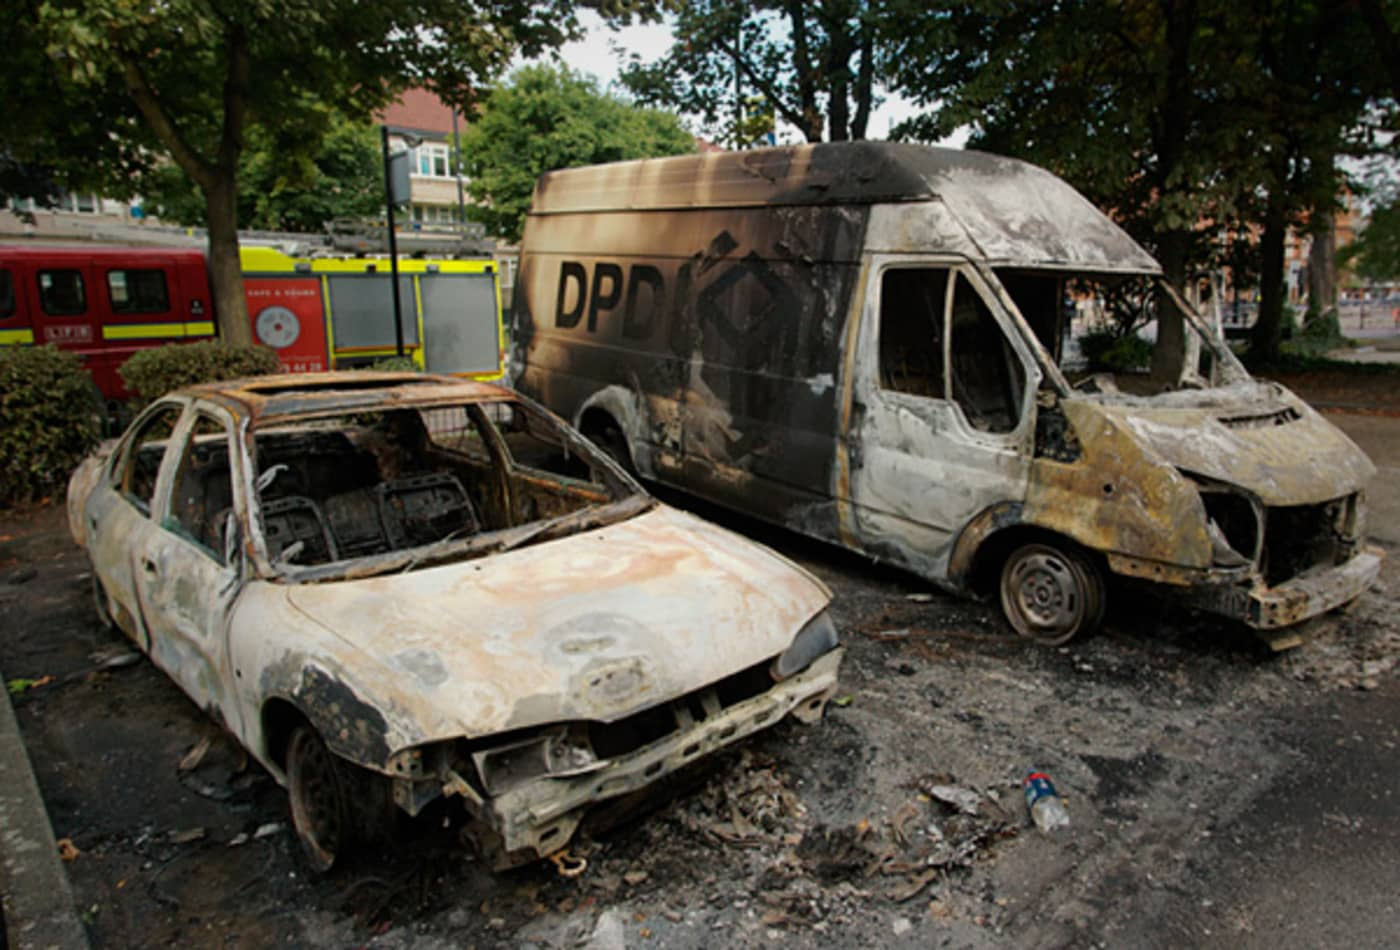 CNBC_scenes_from_london_riots_burnt_cars.jpg